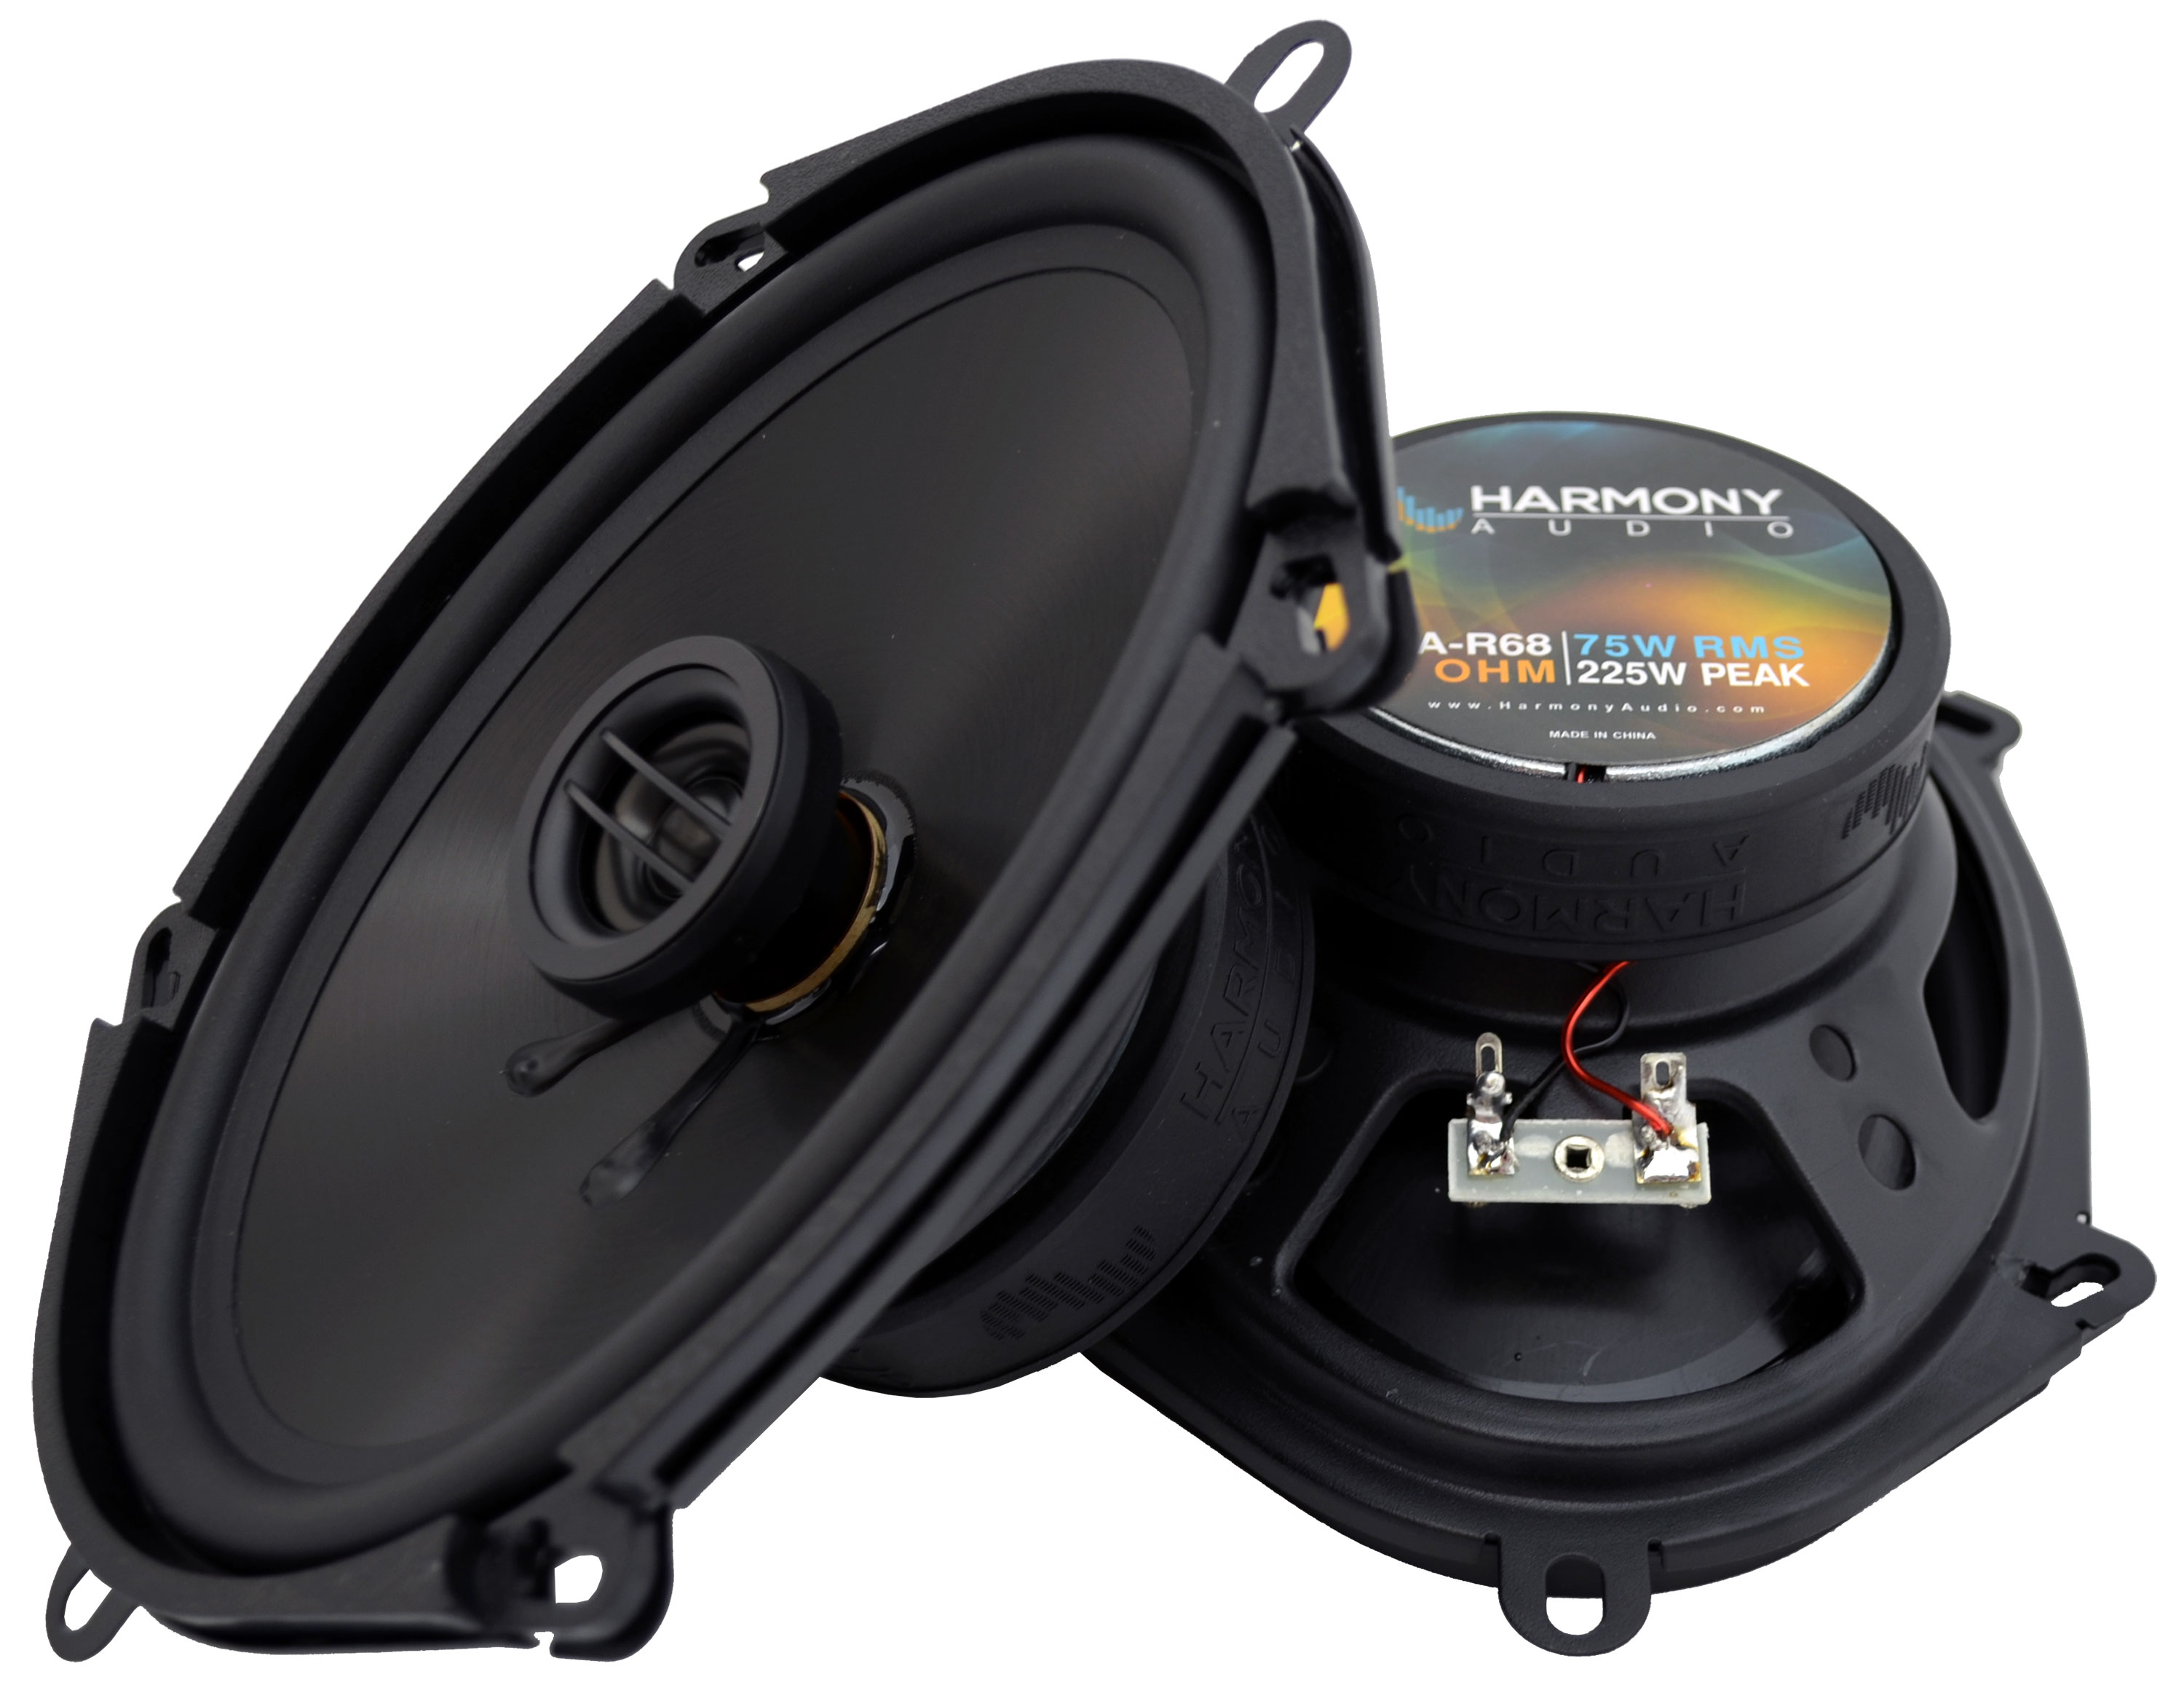 Fits Chrysler E-Class 1984-1993 Rear Deck Replacement Harmony HA-R68 Speakers